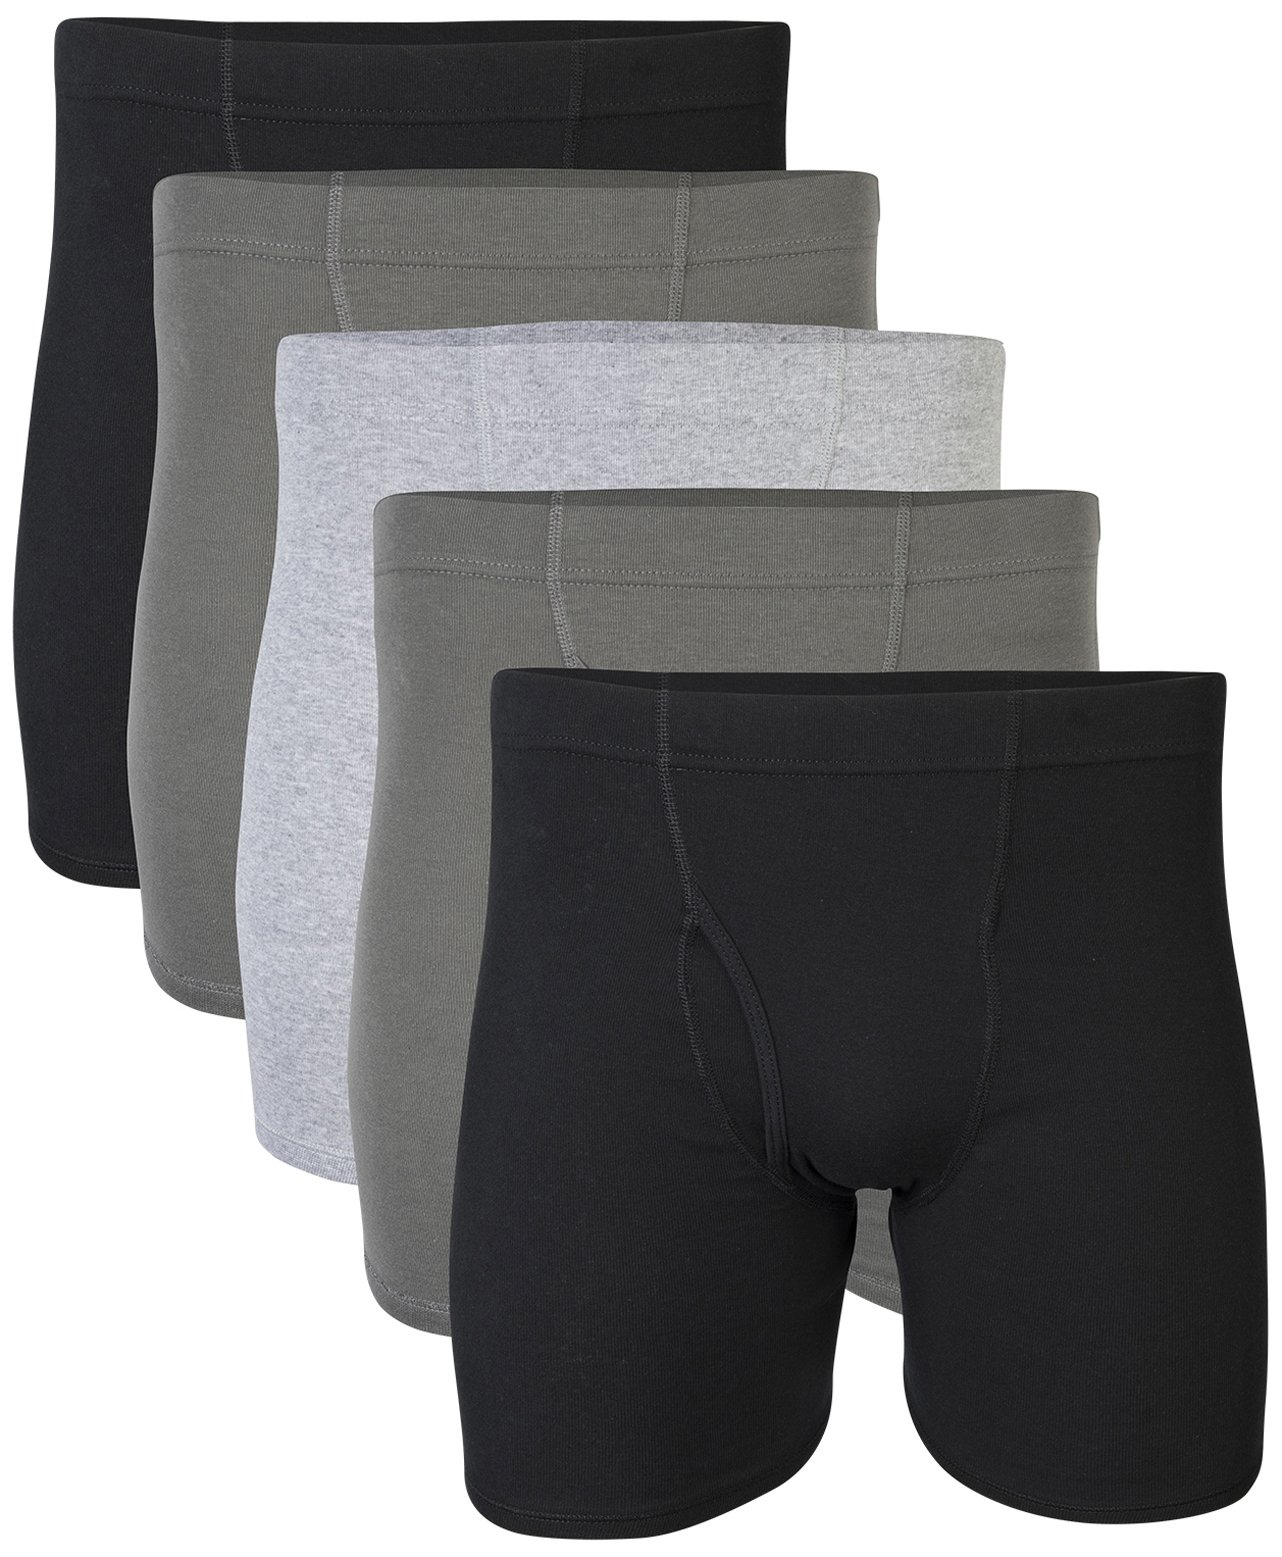 Gildan Men's Covered Waistband Boxer Brief 5 Pack, Grey/Black, Medium